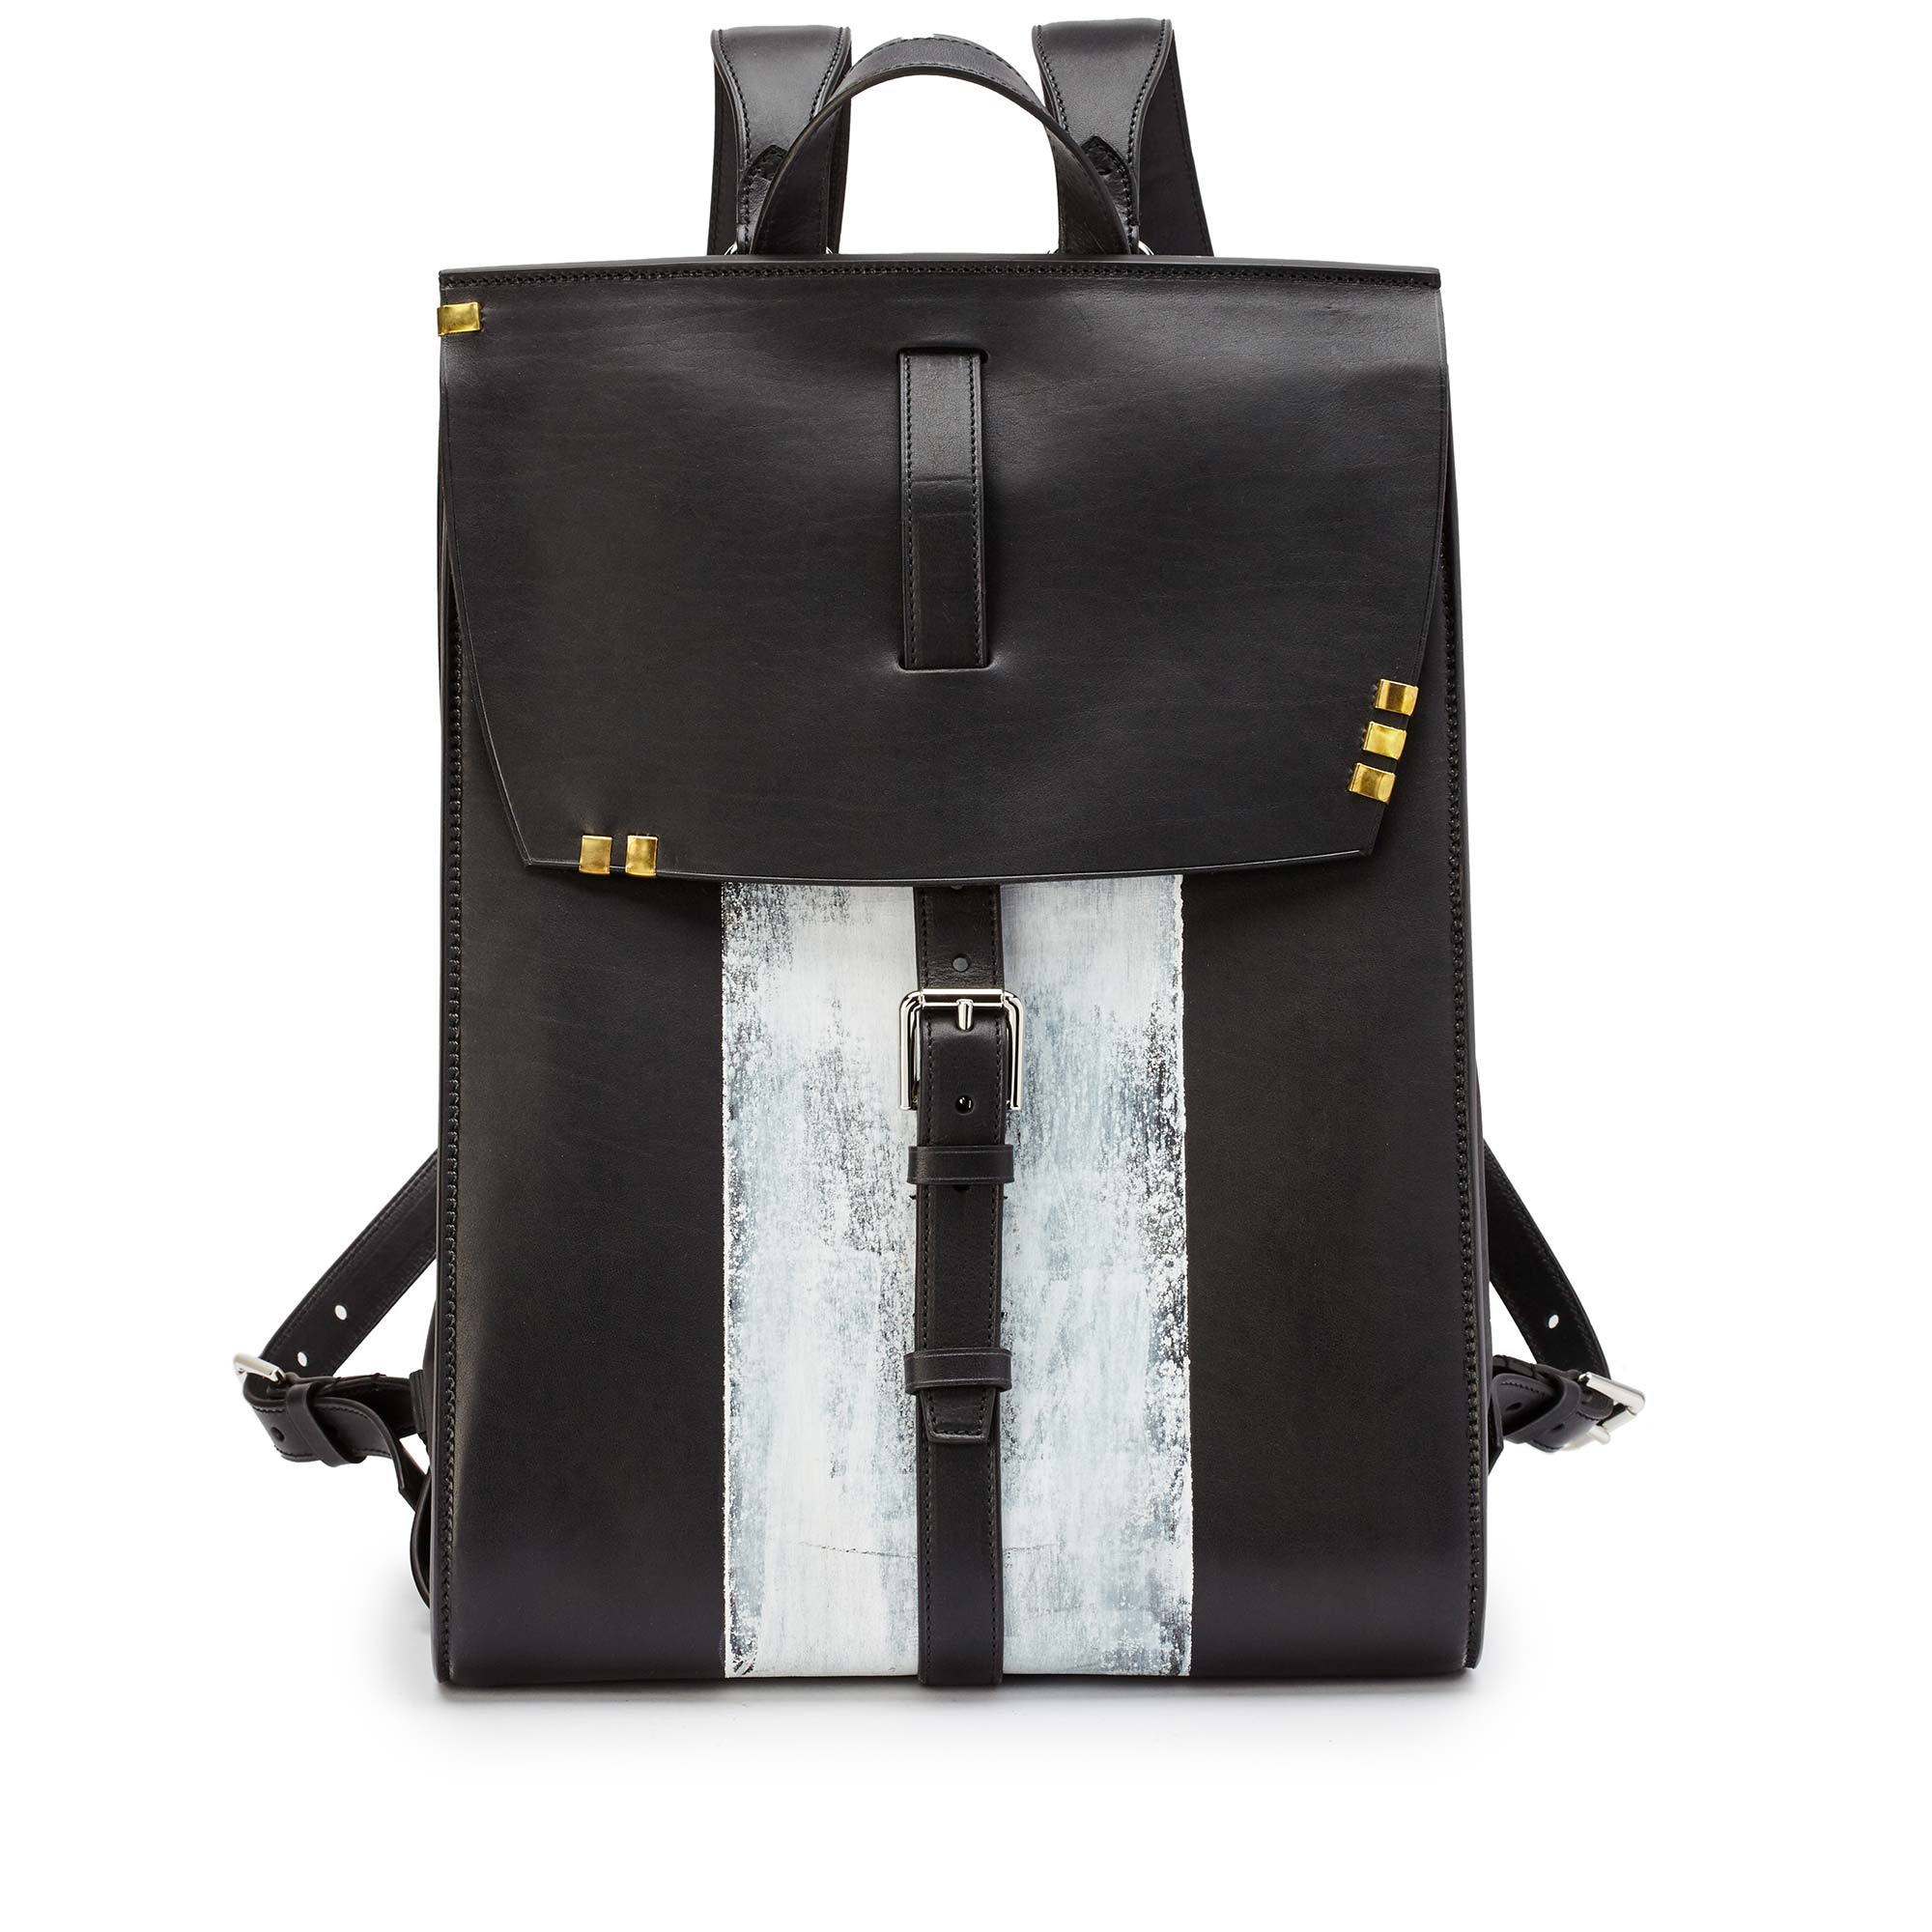 Signature-Backpack-black-ivory-rock-calf-bag-Bertoni-1949